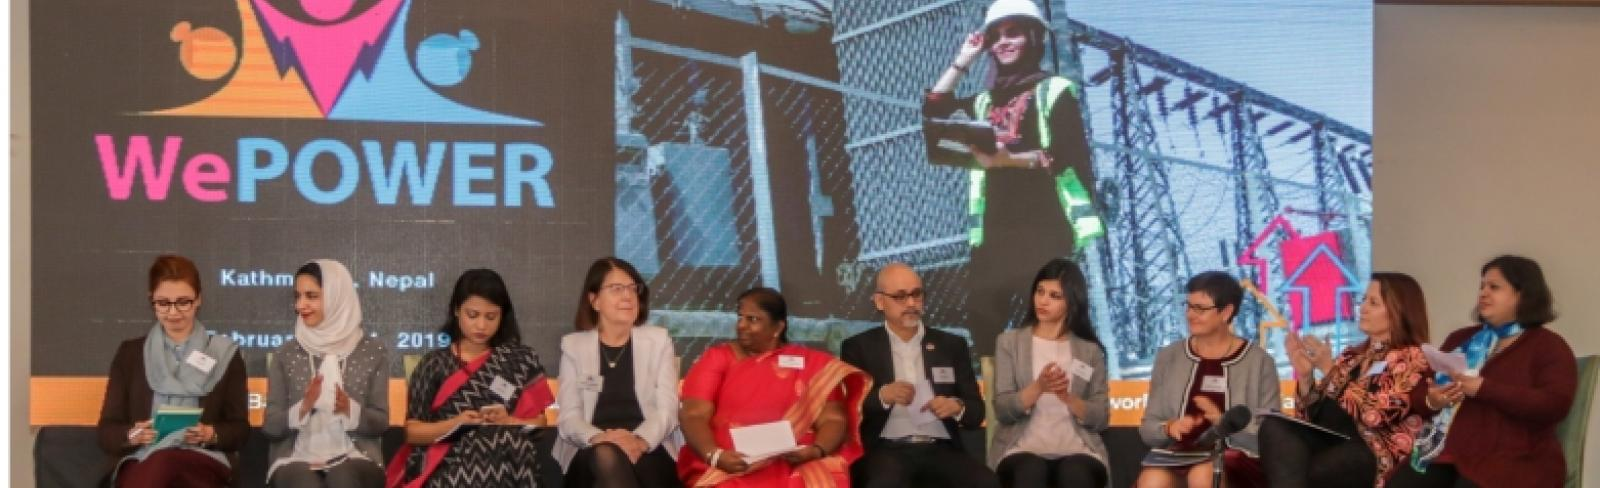 WEPOWER Conference Promotes Gender Diversity in Energy Sector Across South Asia